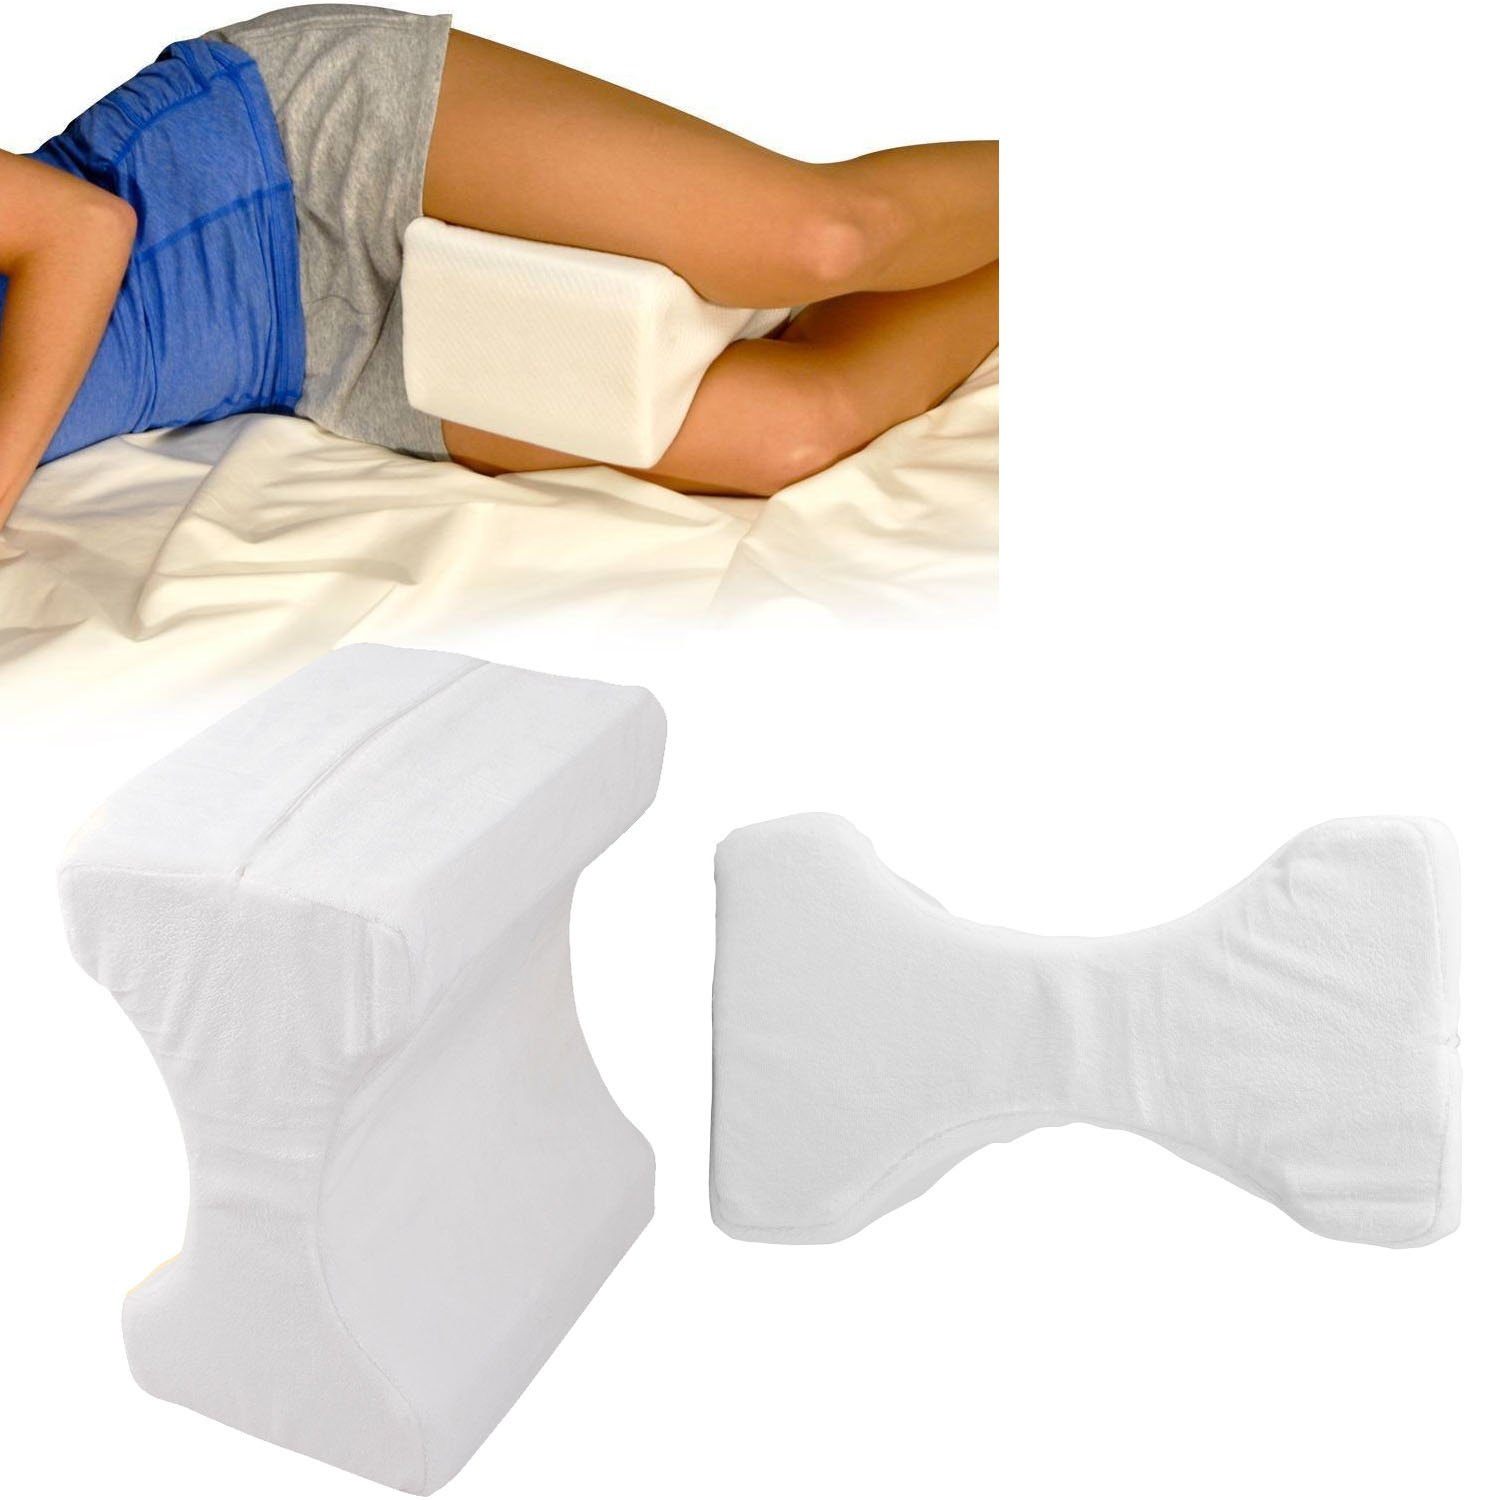 CONTOUR MEMORY FOAM LEG PILLOW ORTHOPAEDIC FIRM BACK HIPS KNEE